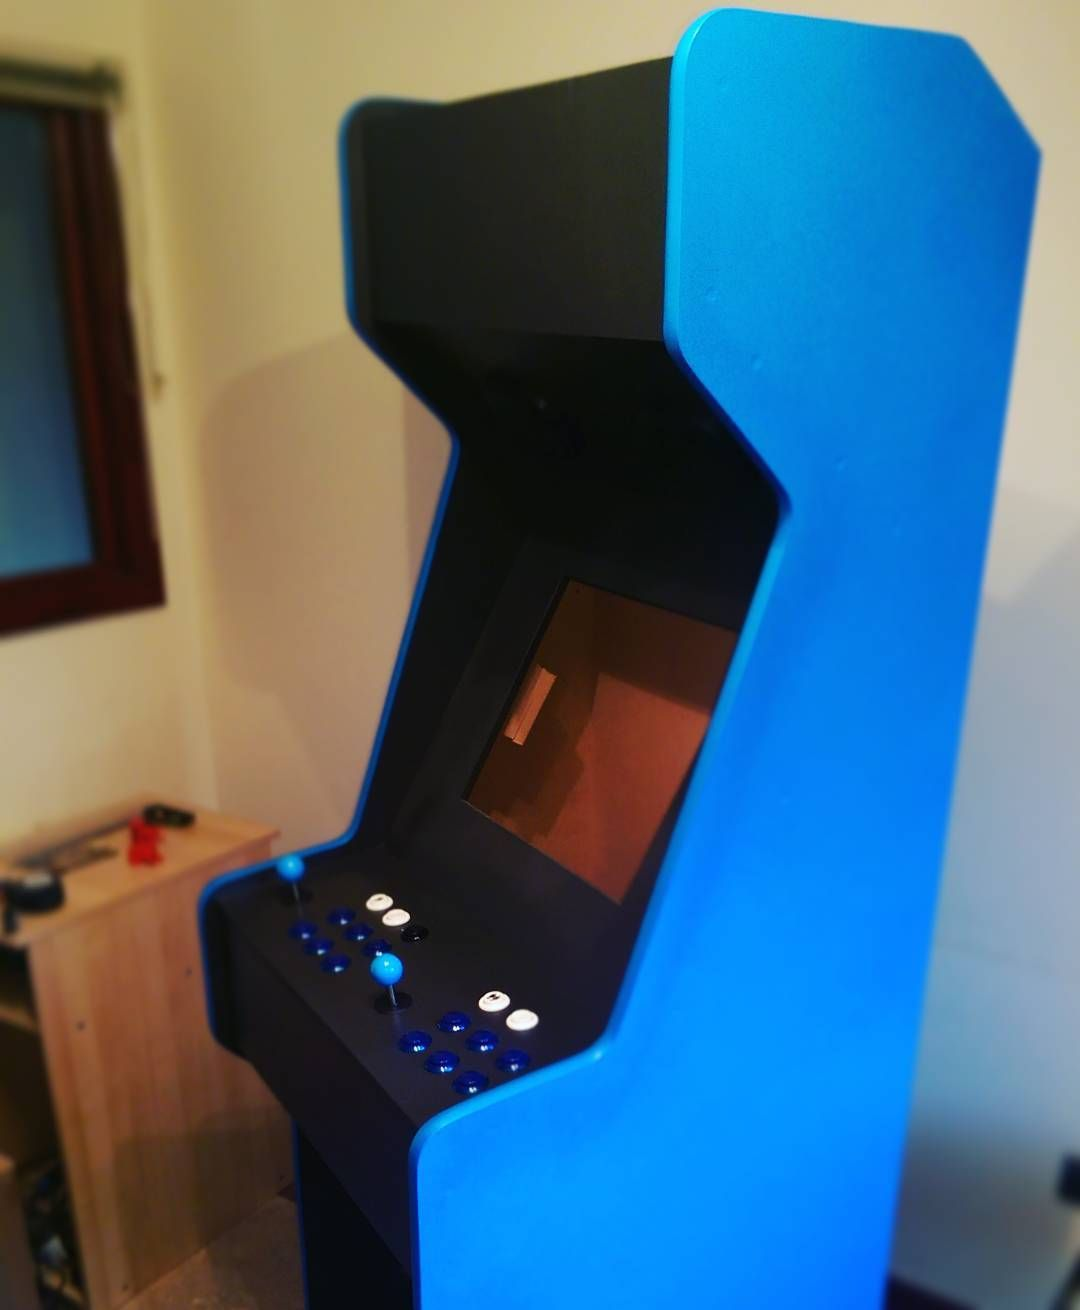 Something we loved from Instagram! A build from last week a customer's #custommachinemk5 this one blue/black with #streetfighter2 #vinyl #marqueeart  #customarcademachines #arcademachine #retrogaming #retrogames #raspberrypi #retropie #nintendo #sega #snes #megadrive #sonicthehedgehog #supermario #mancave #boystoys by gafpritch Check us out http://bit.ly/1KyLetq